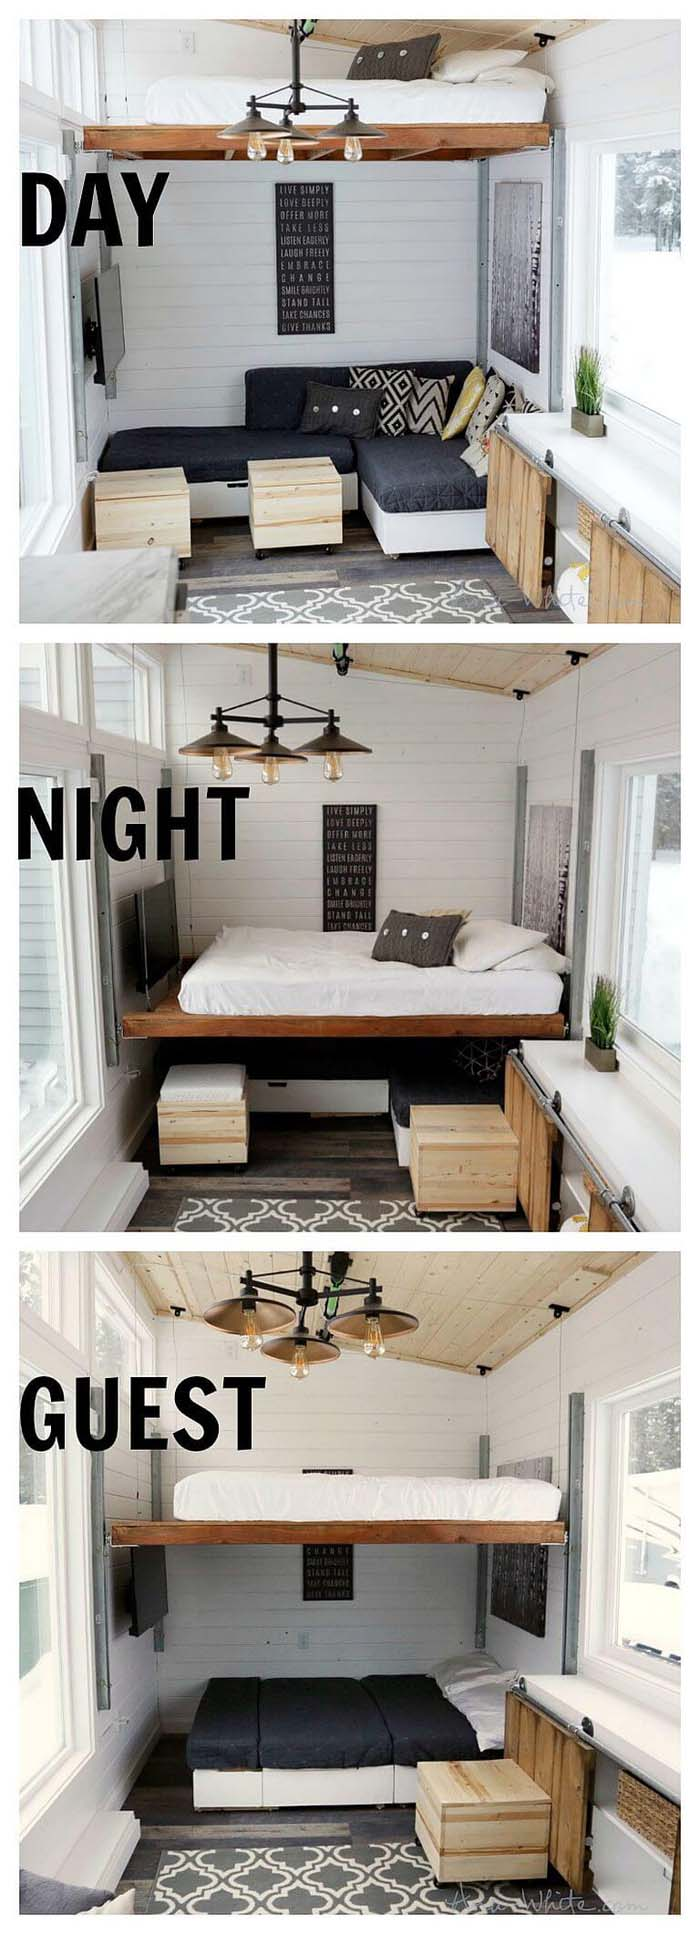 Sliding Loft that Adjusts to Your Needs #bedroom #small #design #decorhomeideas